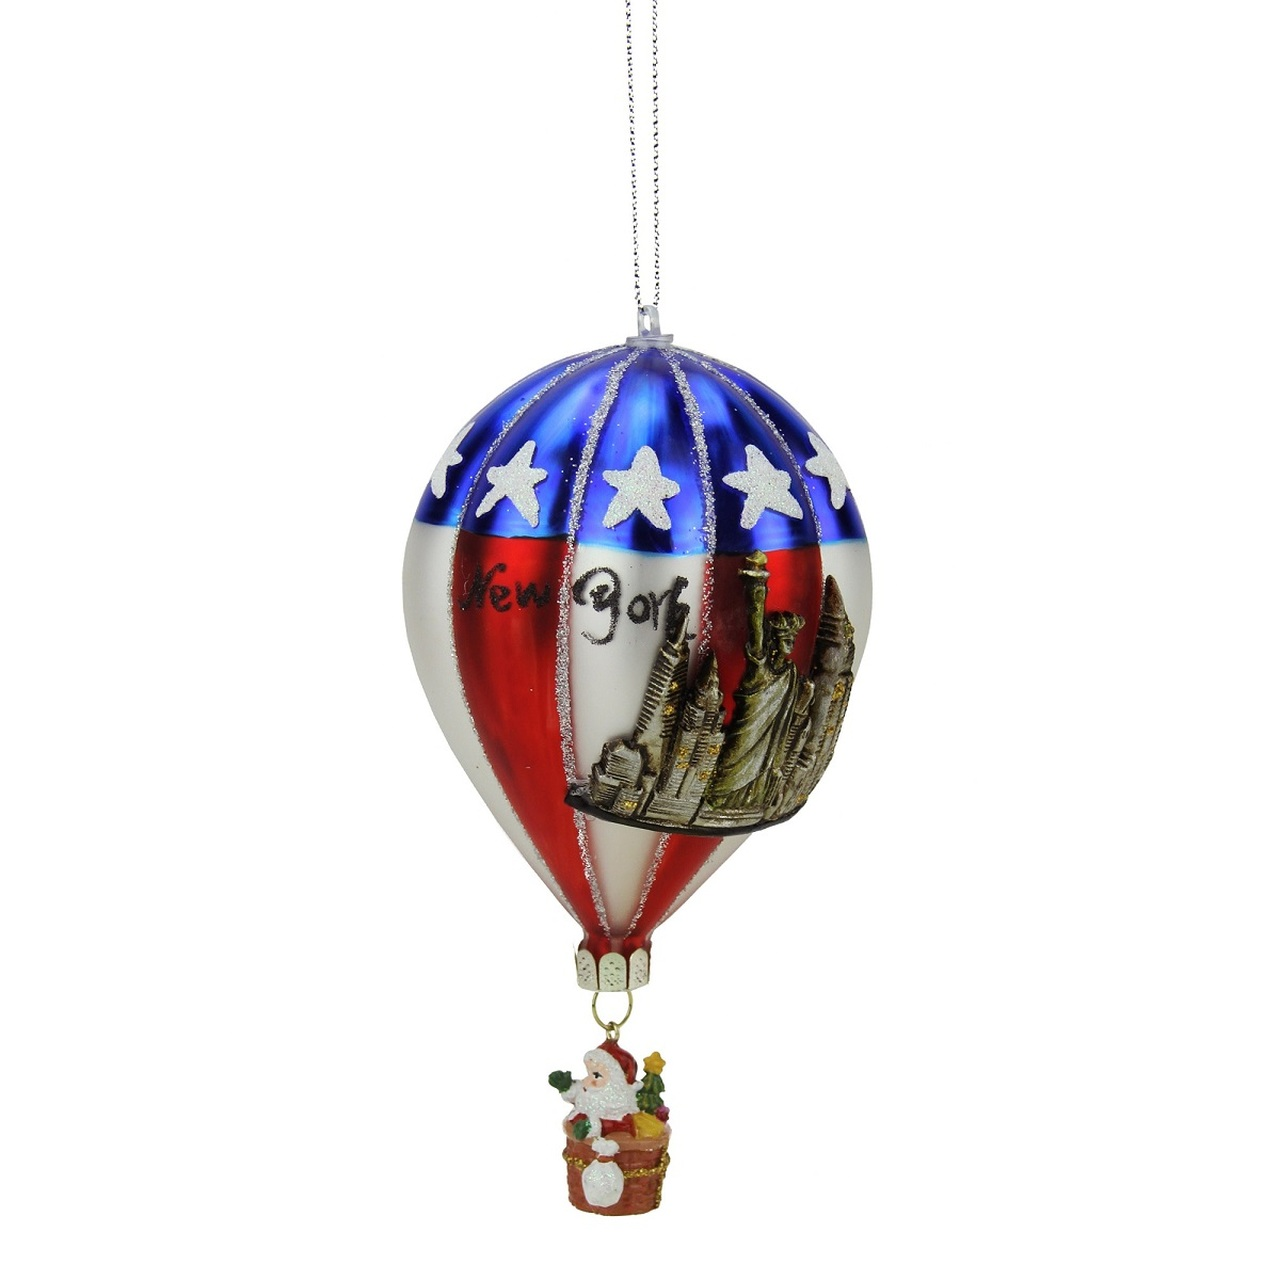 northlight - Red And Silver Christmas Ornaments